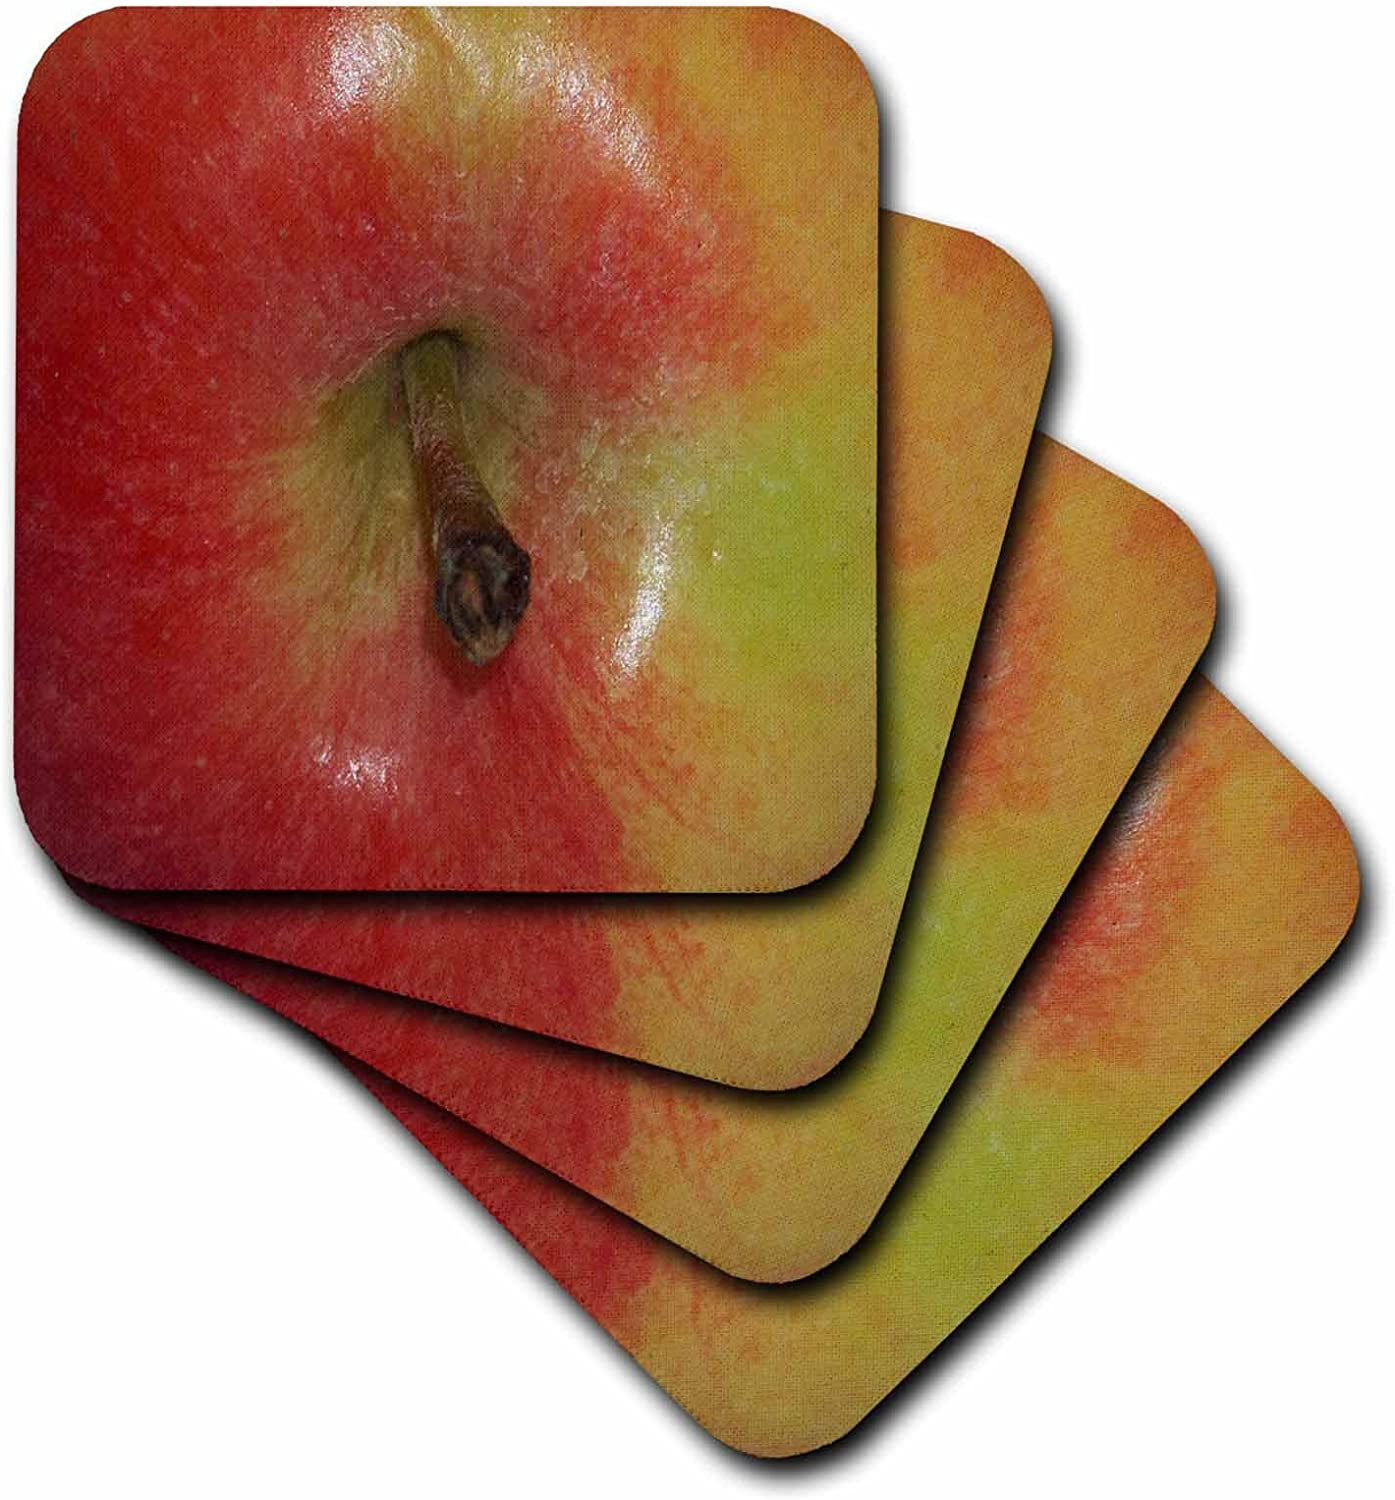 3dRose cst_21644_2 Red and Yellow Apple Stem Soft Coasters, Set of 8